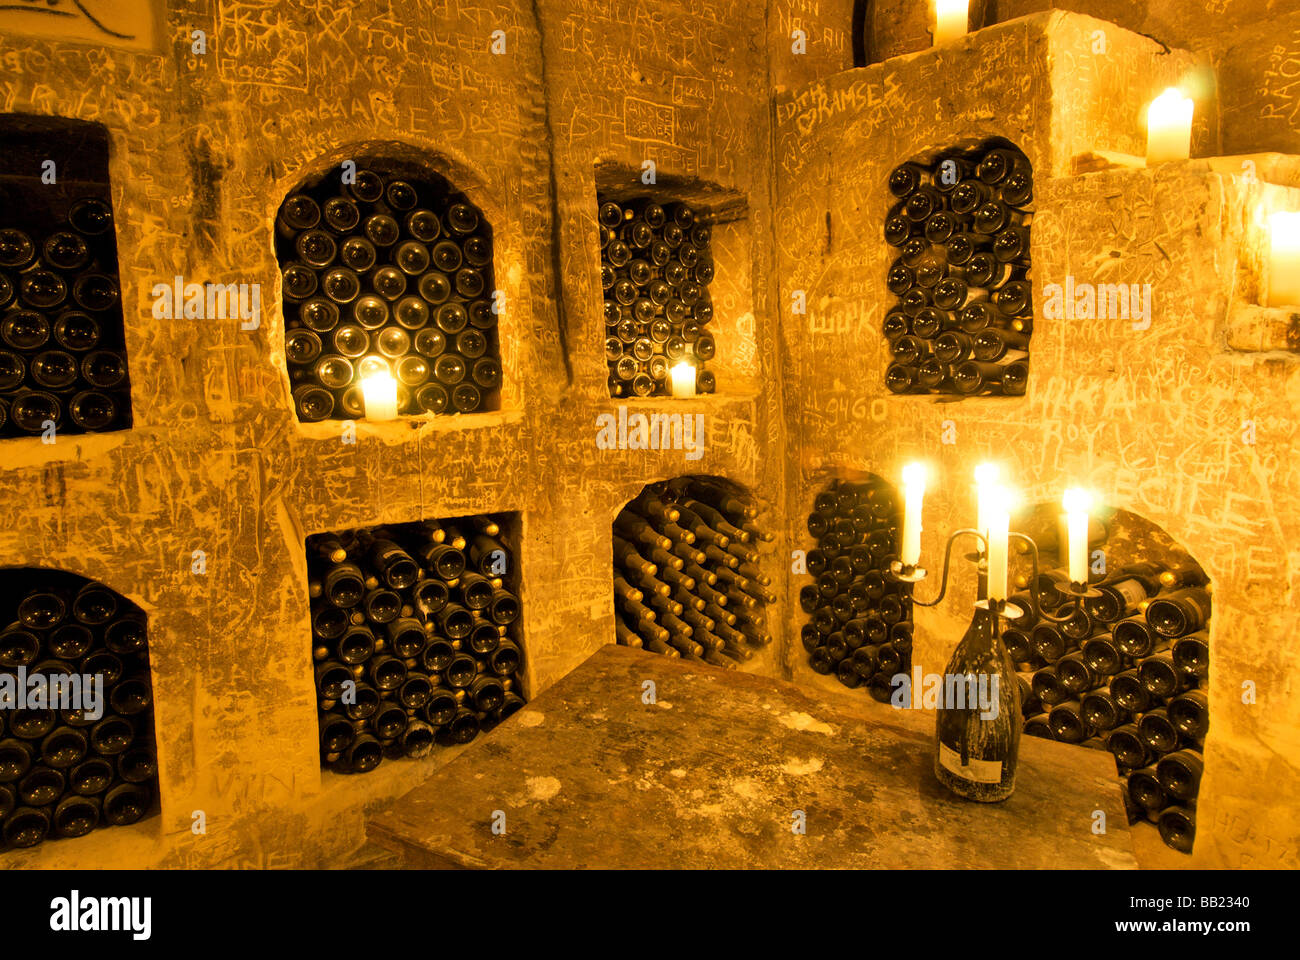 Europe, Netherlands, Limburg, Maastricht, Chateau Neercanne, Wine celler - Stock Image